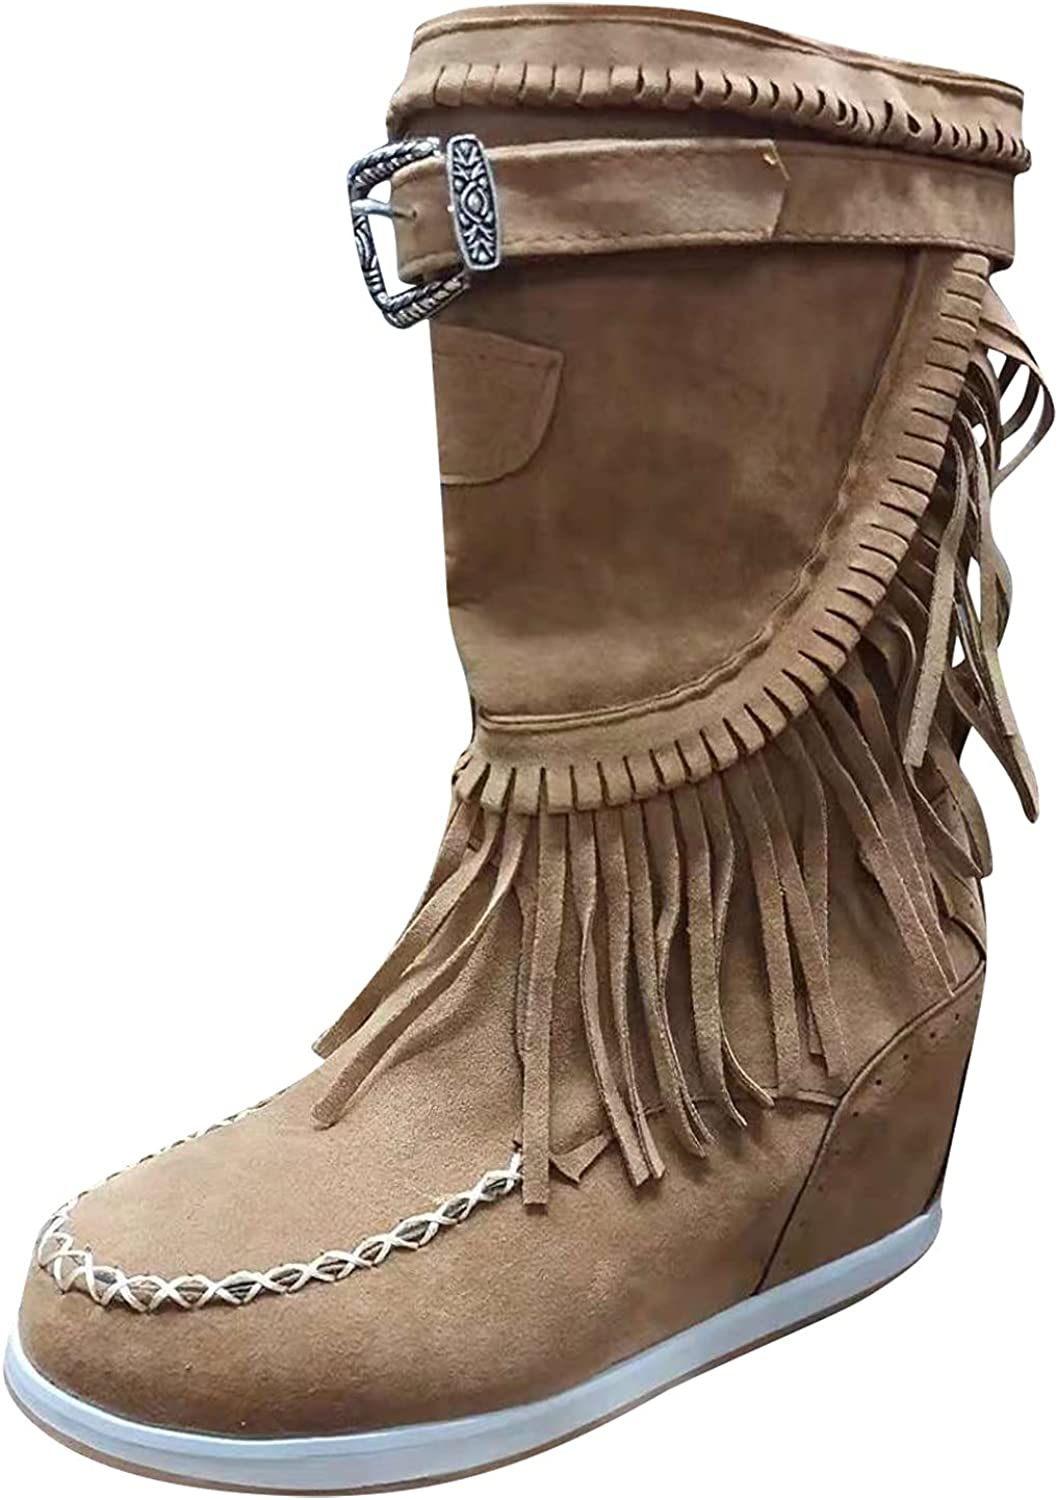 ZiSUGP Womens Platform Mid Calf Boots Tassel Retro Chelsea Boots Fashion Comfortable Cowboy Boots With Zipper for Ladies Girls